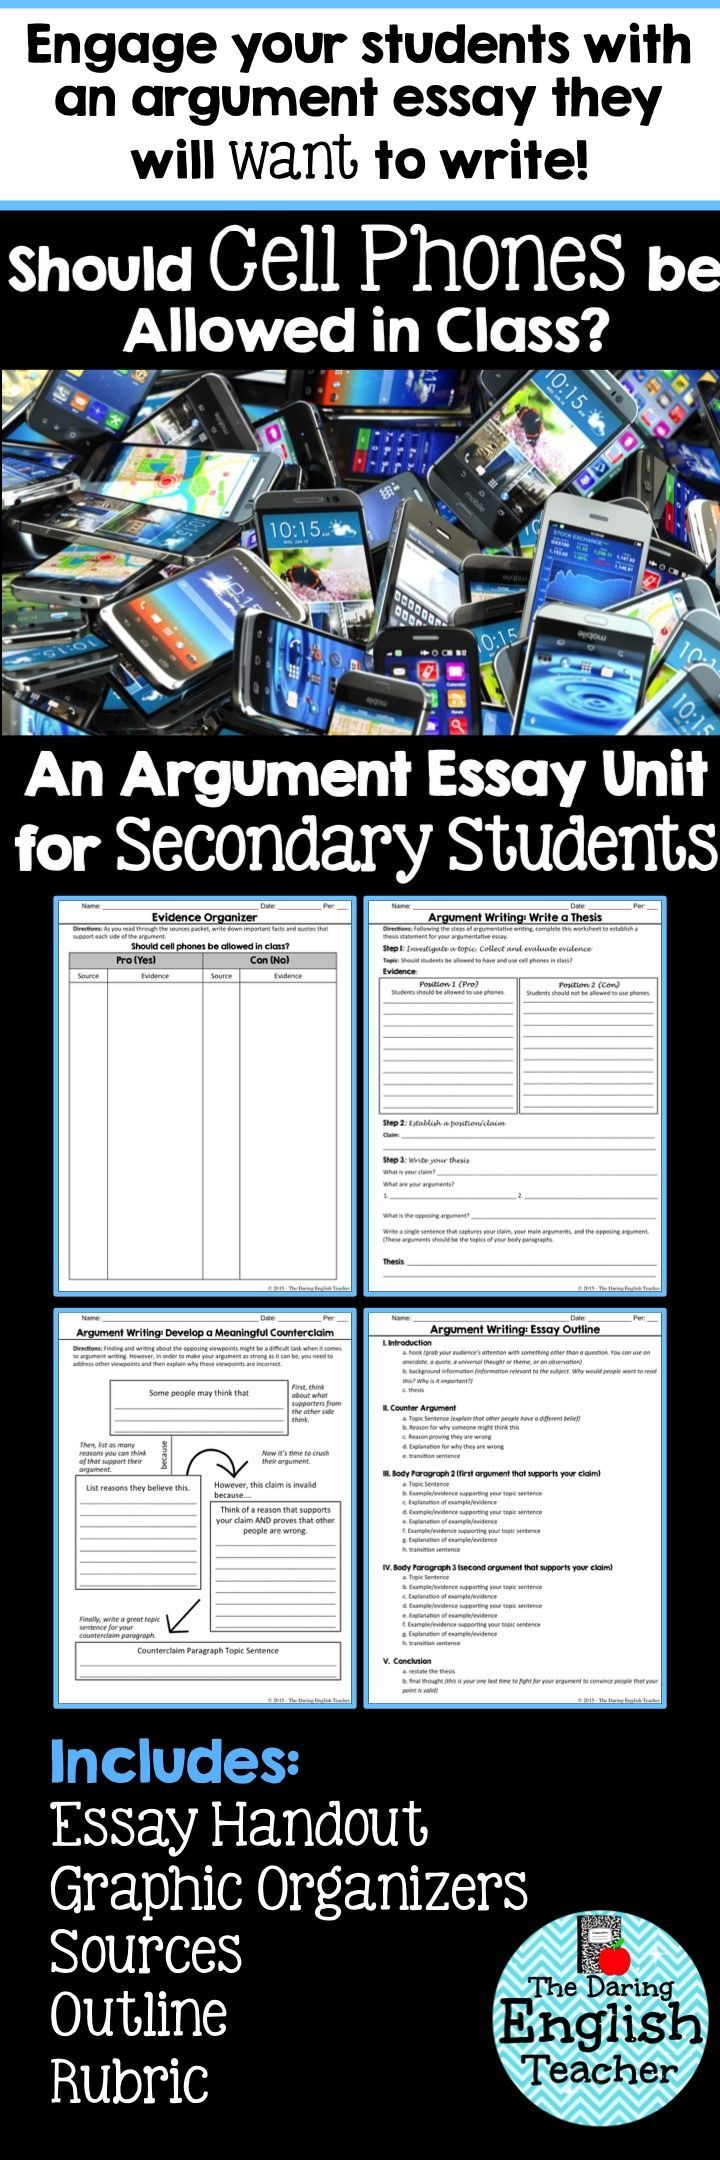 best ideas about argumentative writing thesis argument essay unit should cell phones be allowed in class